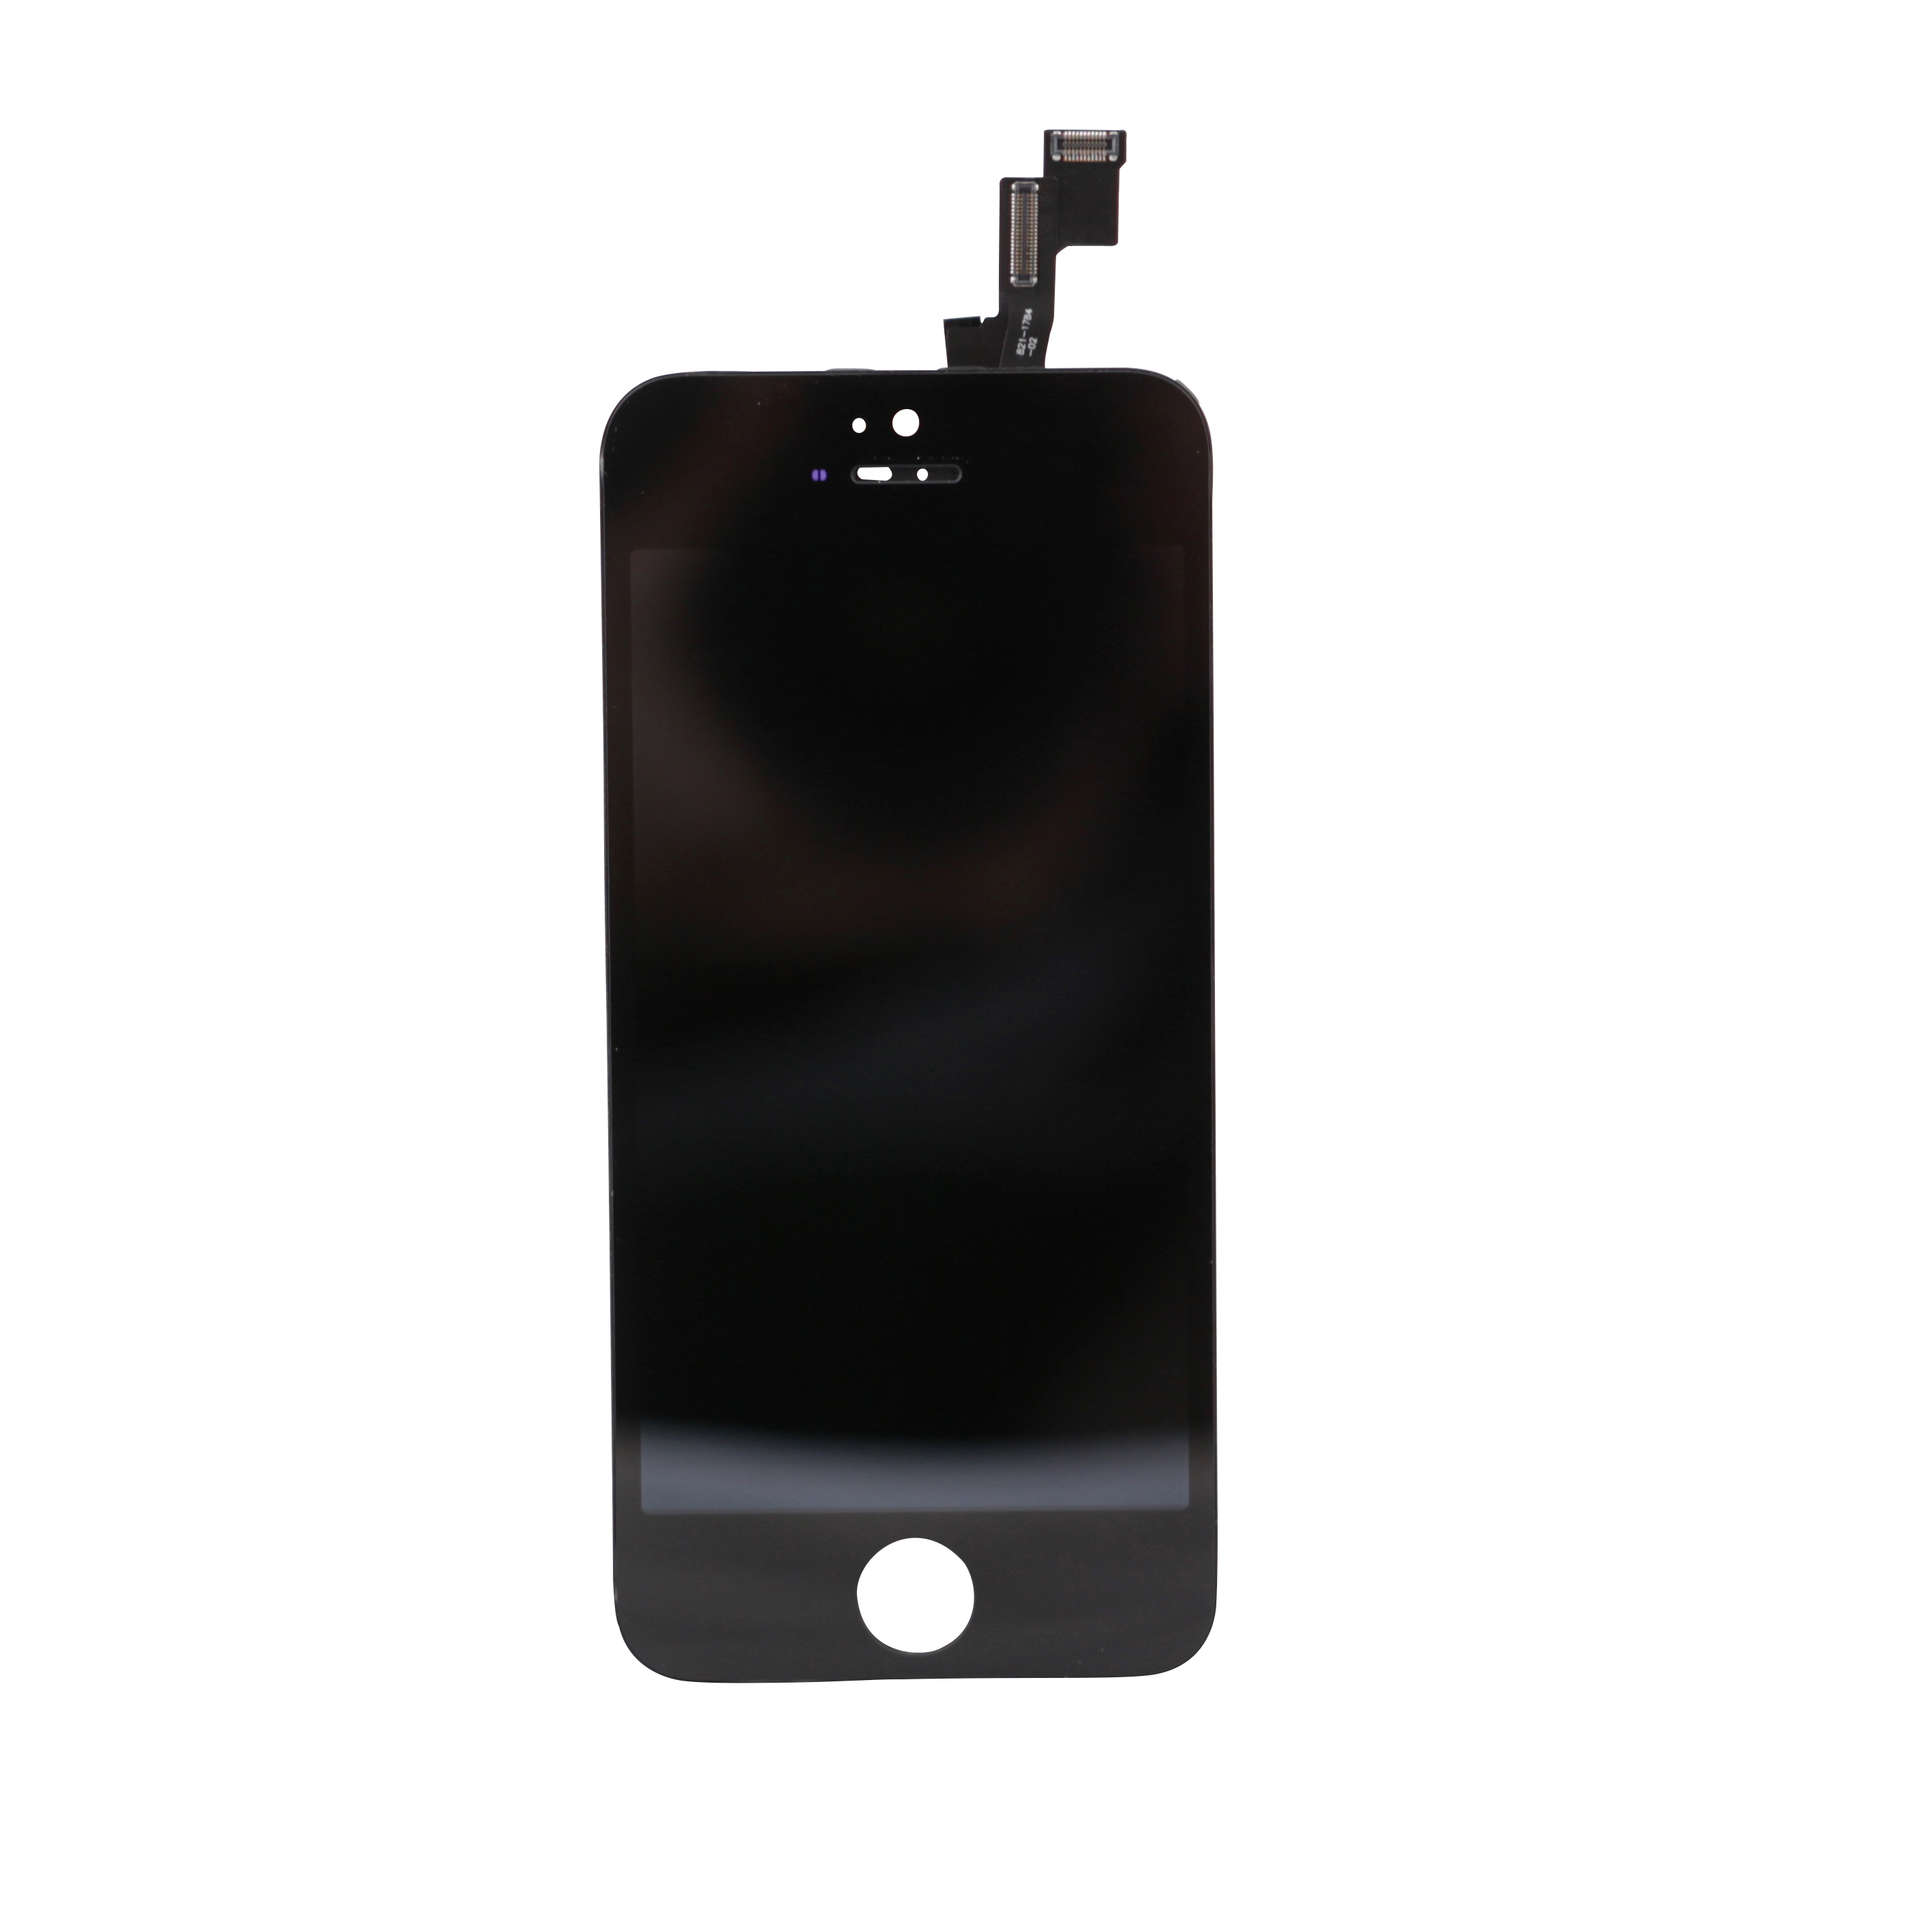 replacing iphone 5 screen iphone 5 replacement screen theunlockr 5275